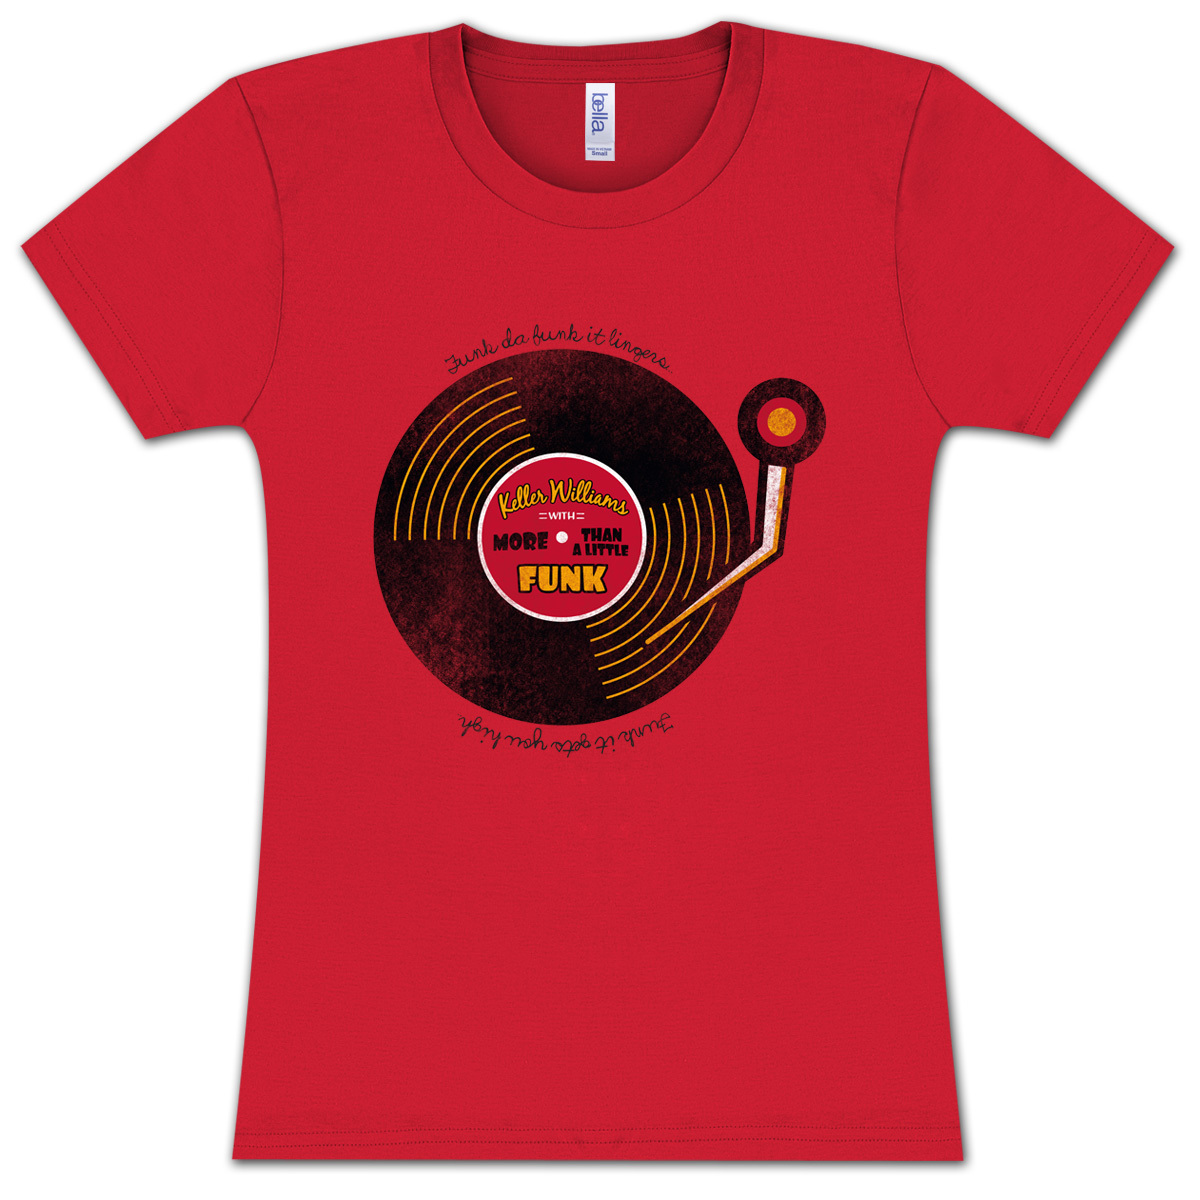 Keller Williams Funk More Than A Little Ladies T-Shirt